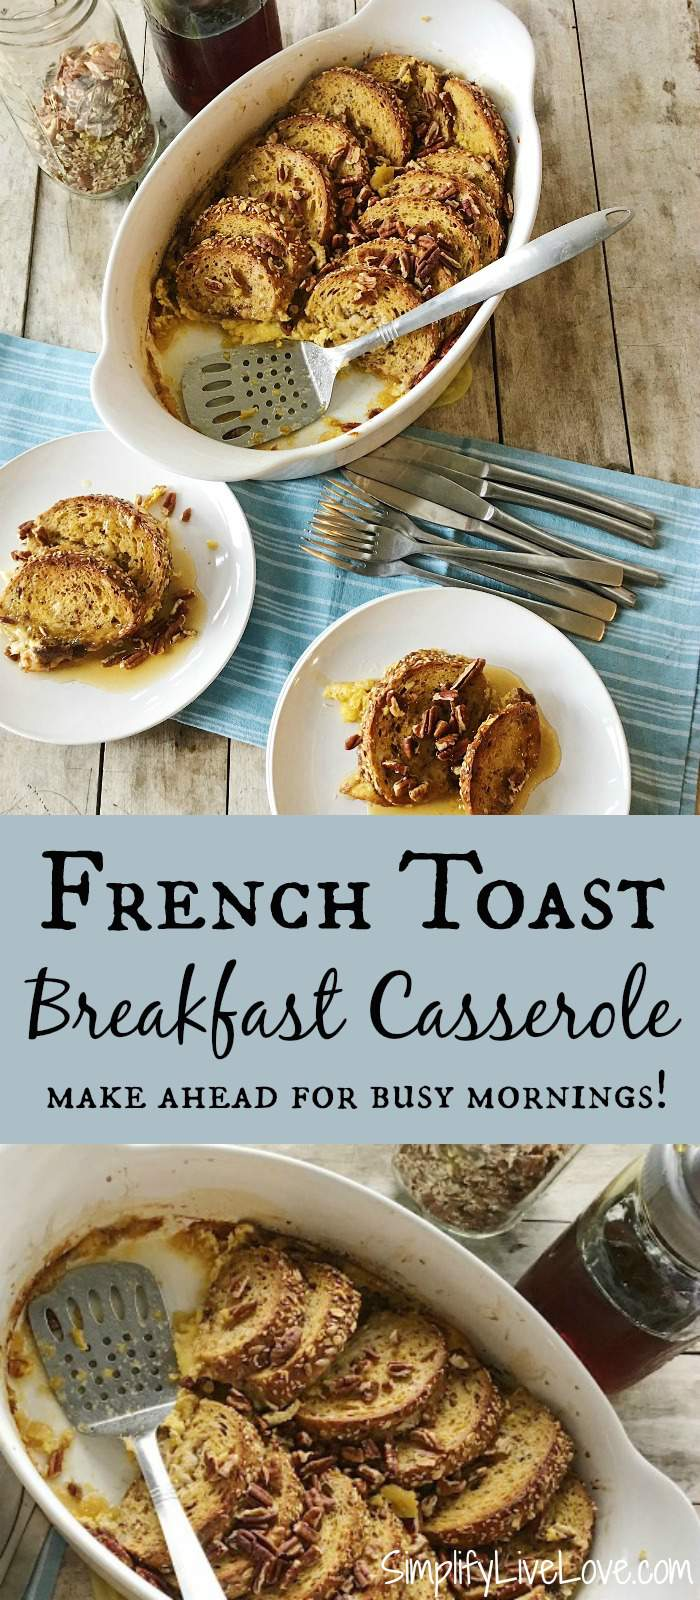 This french toast breakfast casserole is absolutely delicious! Assemble it at night before you go to bed and pop it in the oven in the morning! YUM!!